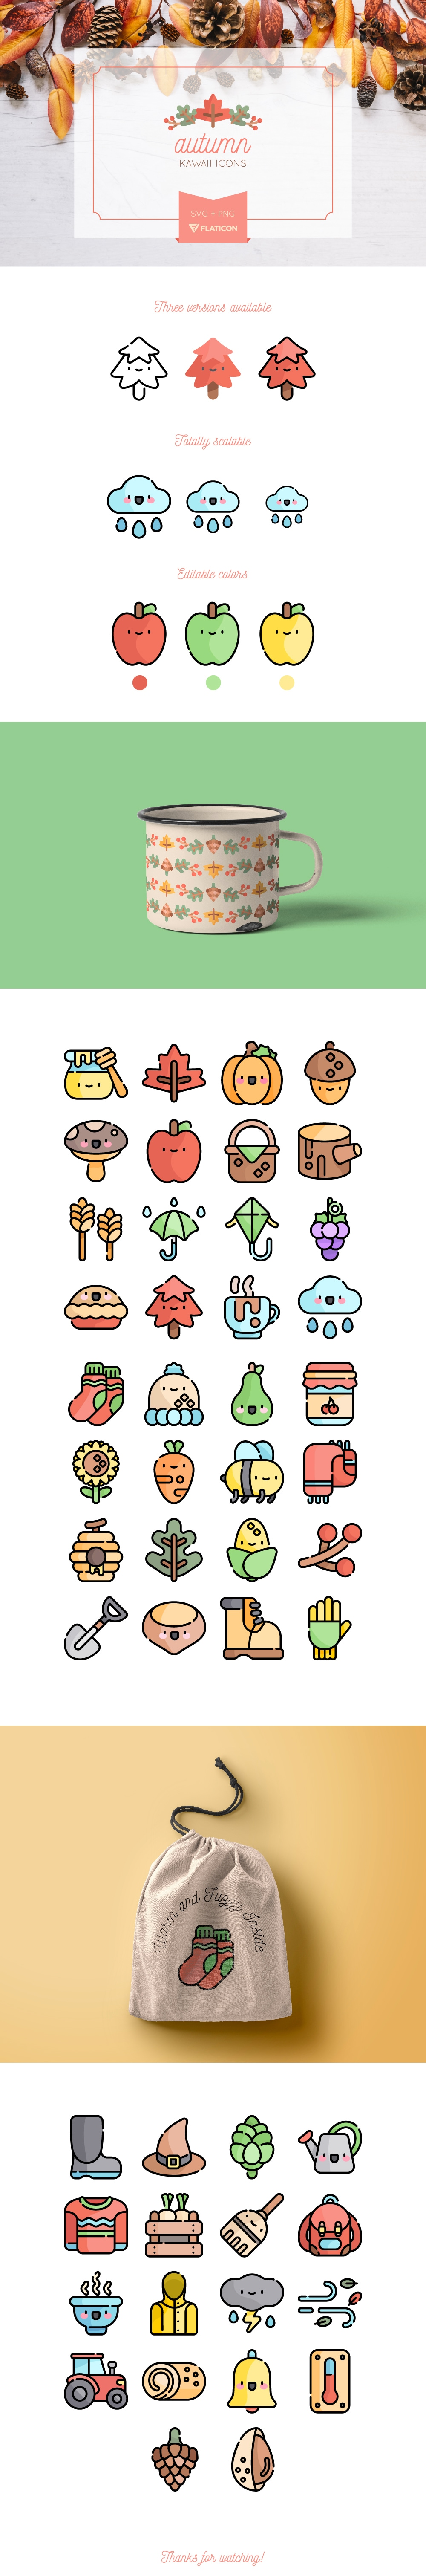 Autumn Kawaii Icon Set - In total there are 50 icons in the set and are available in both SVG and PNG formats. They're all editable, scabale, and come in a choice of flat, line or colored line styles